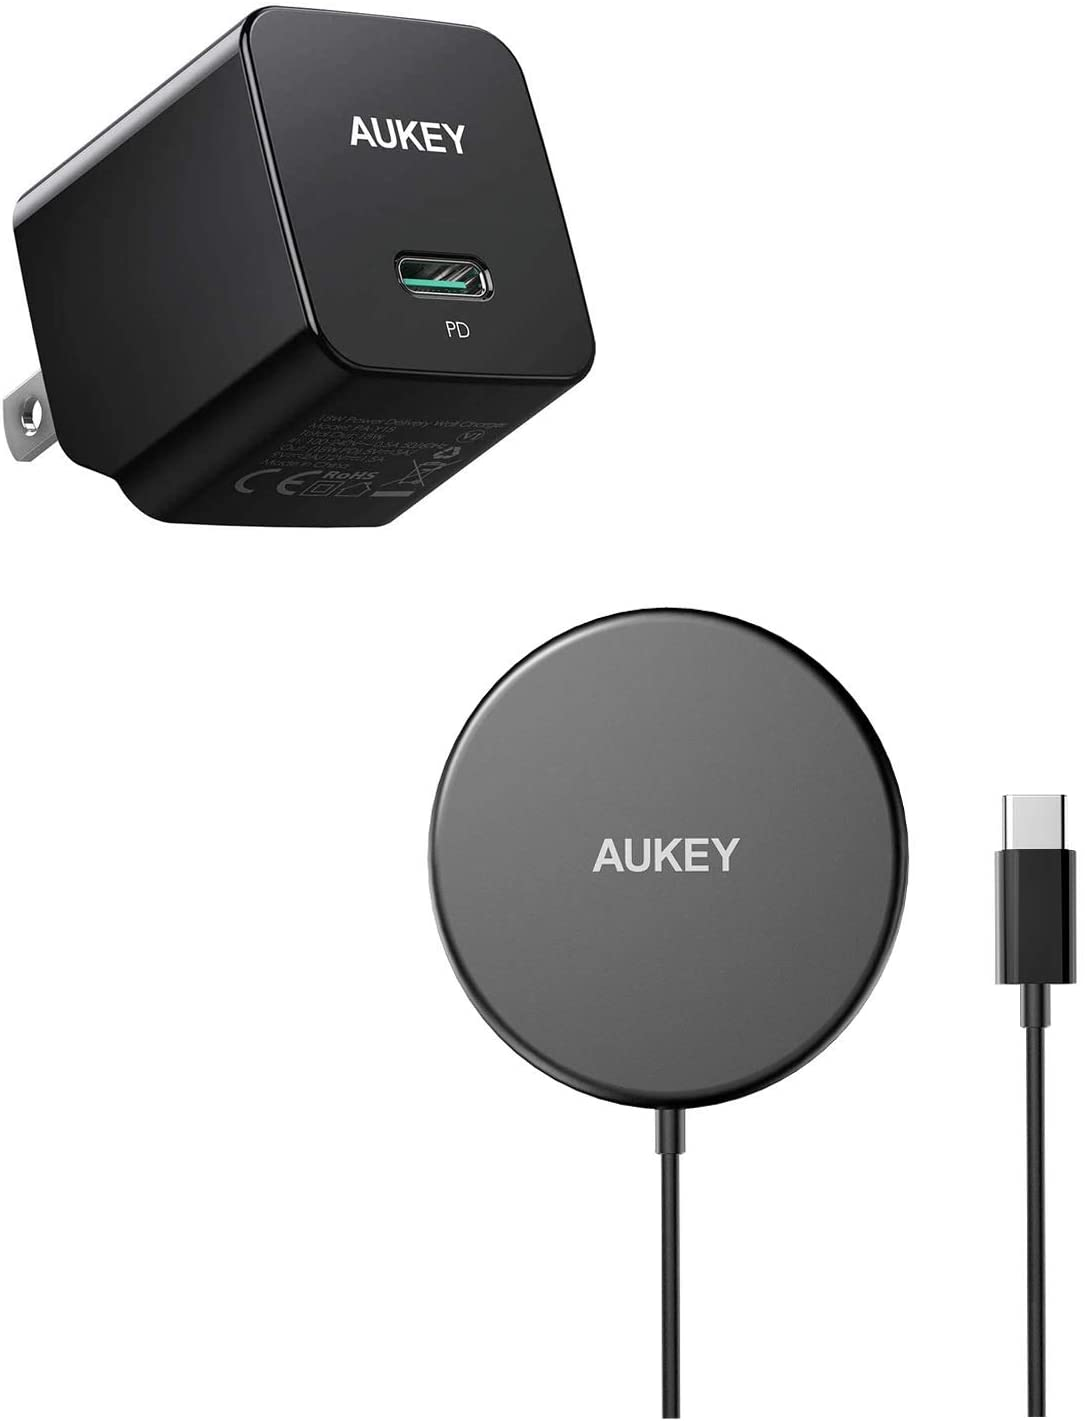 AUKEY Minima 20W iPhone Charger & AUKEY Aircore Magnetic Wireless Charger 15W Max for iPhone 12/12 Pro,Pixel, Samsung